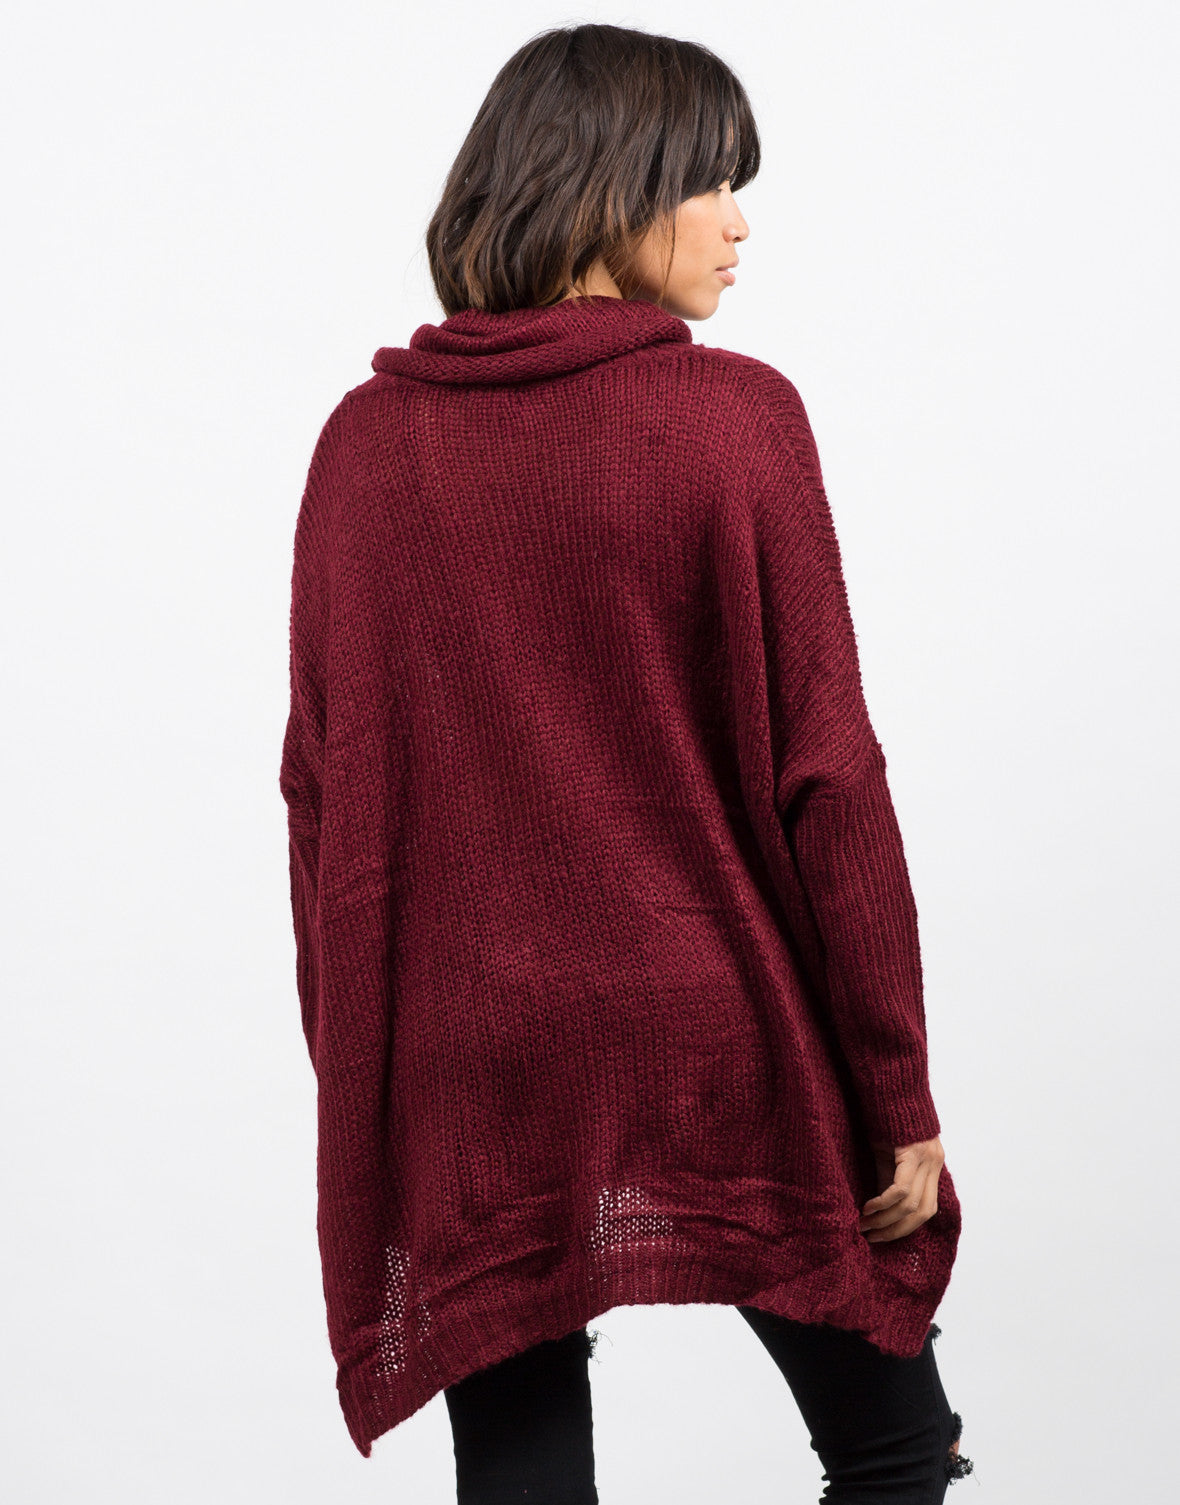 Back View of Oversized Knit Cowl Neck Sweater